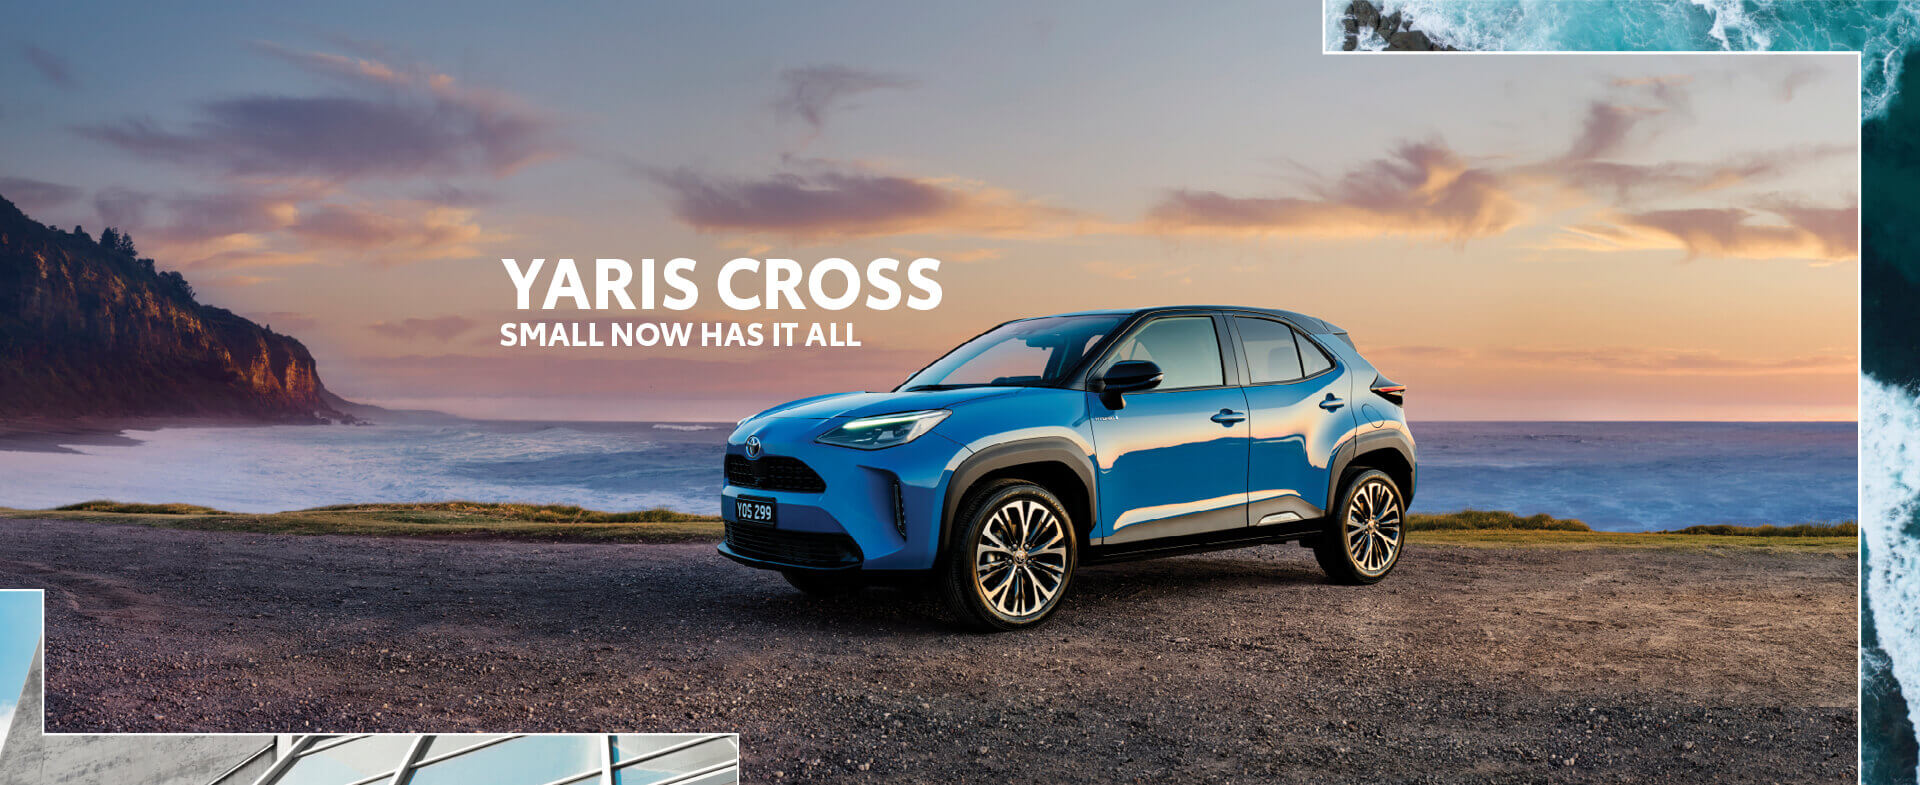 YARIS CROSS - SMALL NOW HAS IT ALL